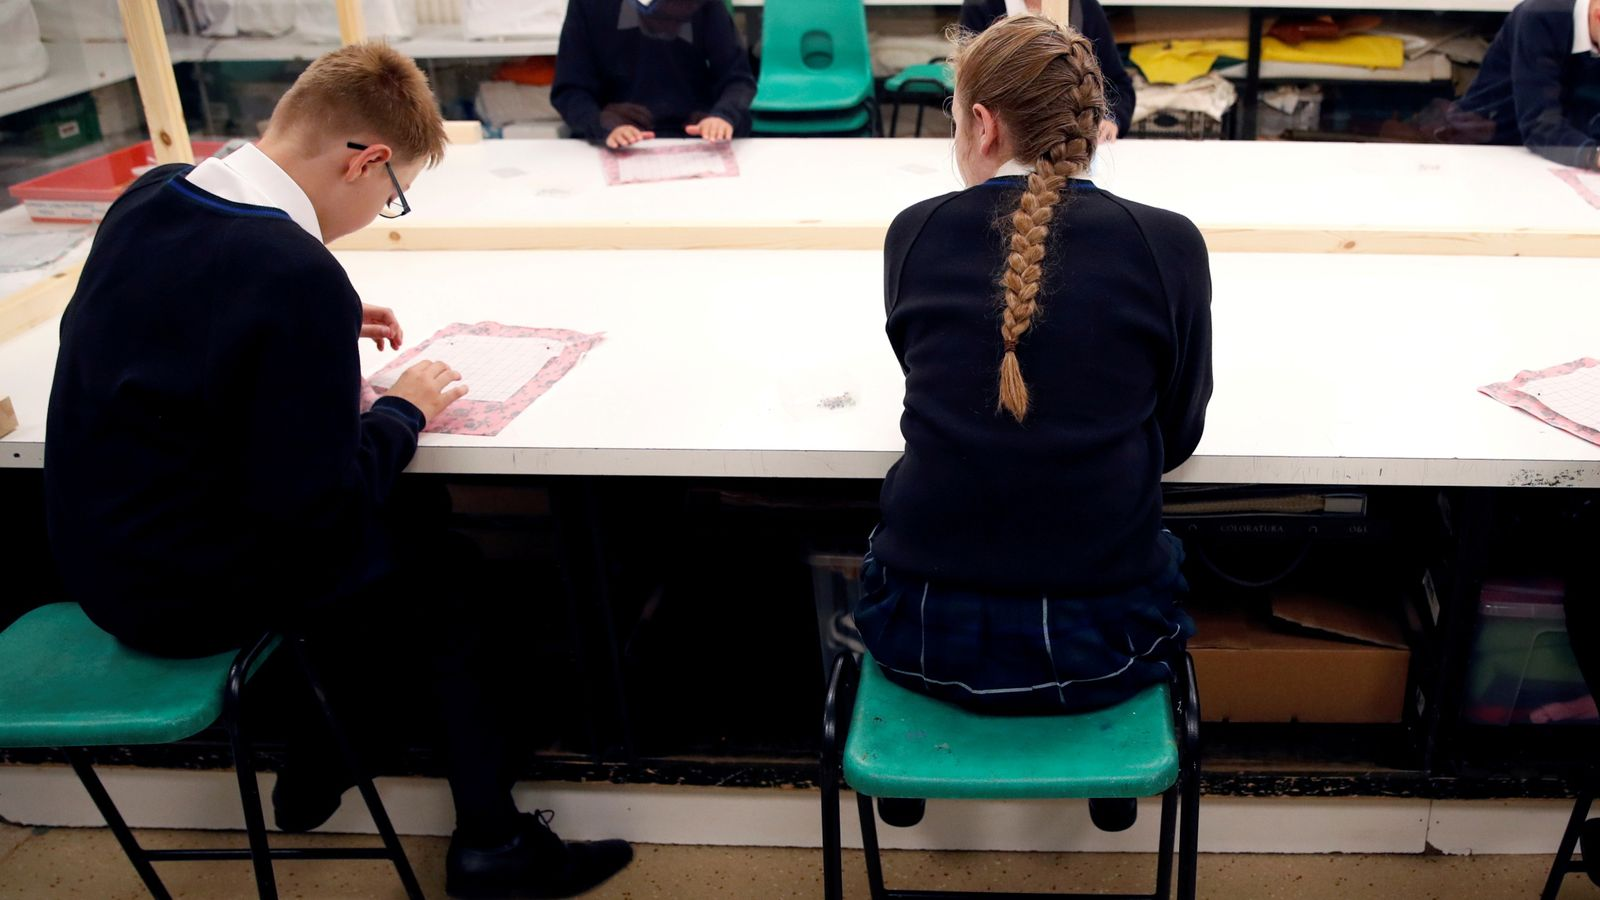 COVID-19: Case rates among schoolchildren in England hit new record high, latest figures show